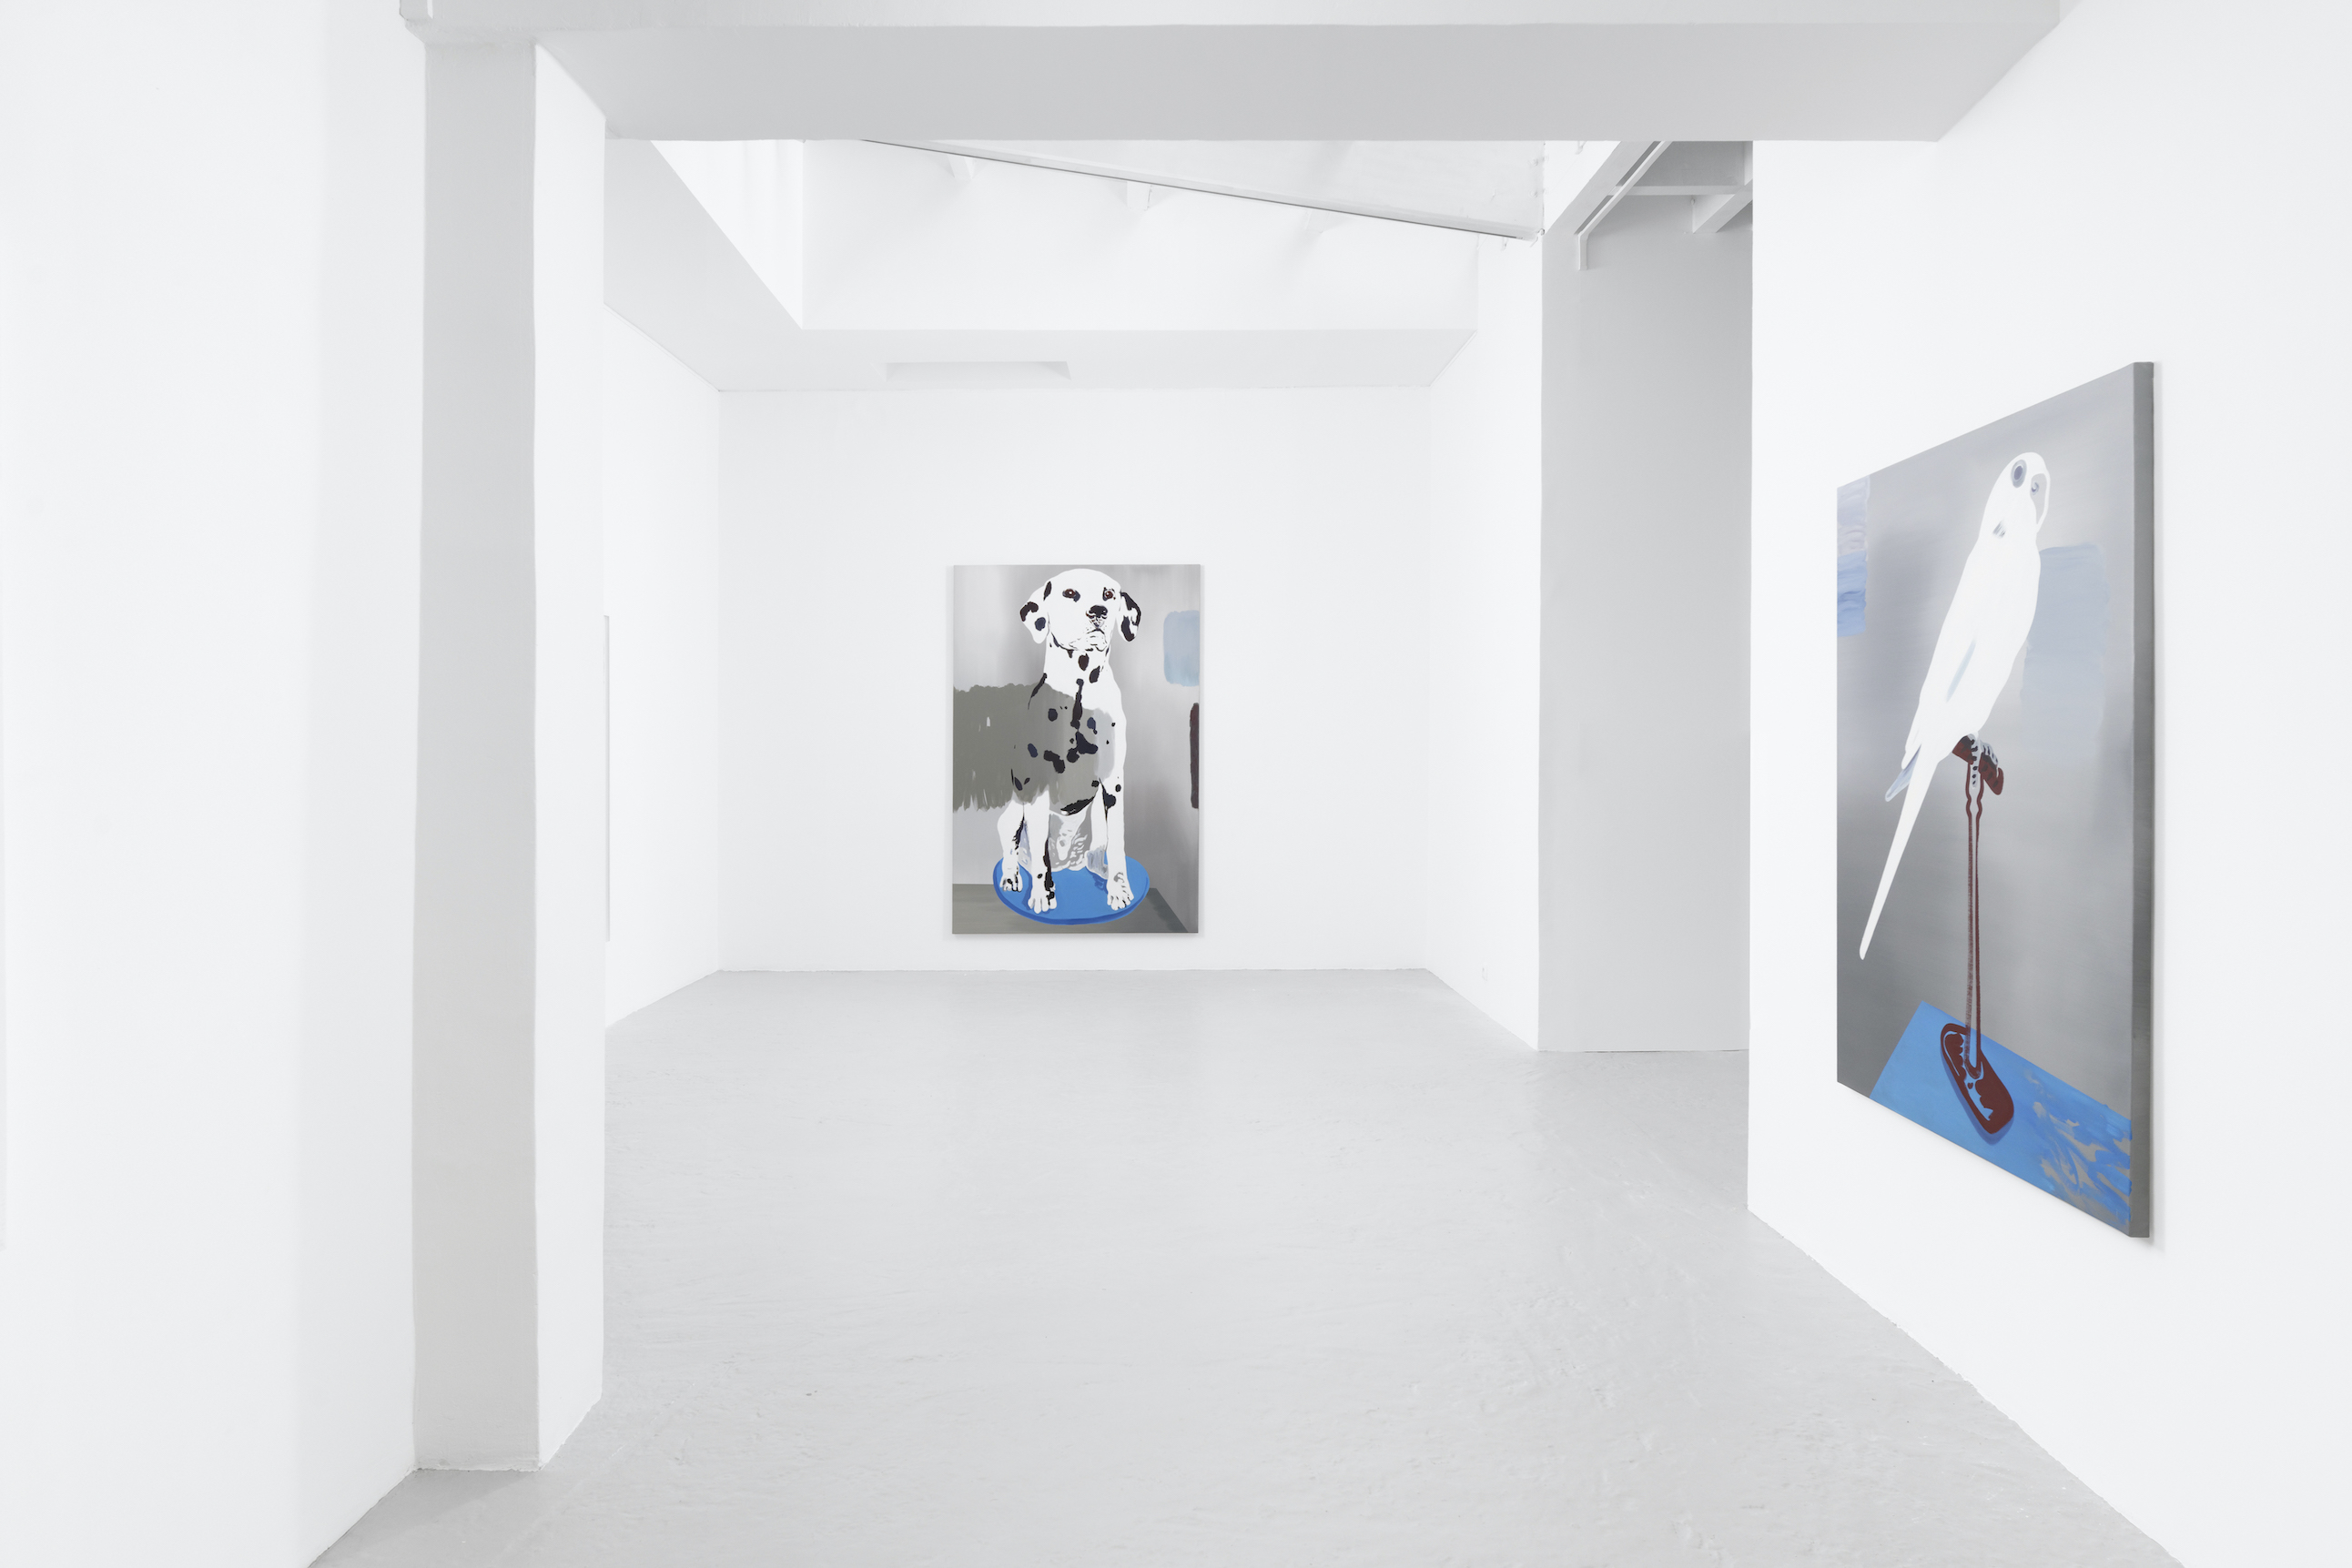 Installation view 1, Forget Me Not, 2020, Courtesy of the artist and Semiose